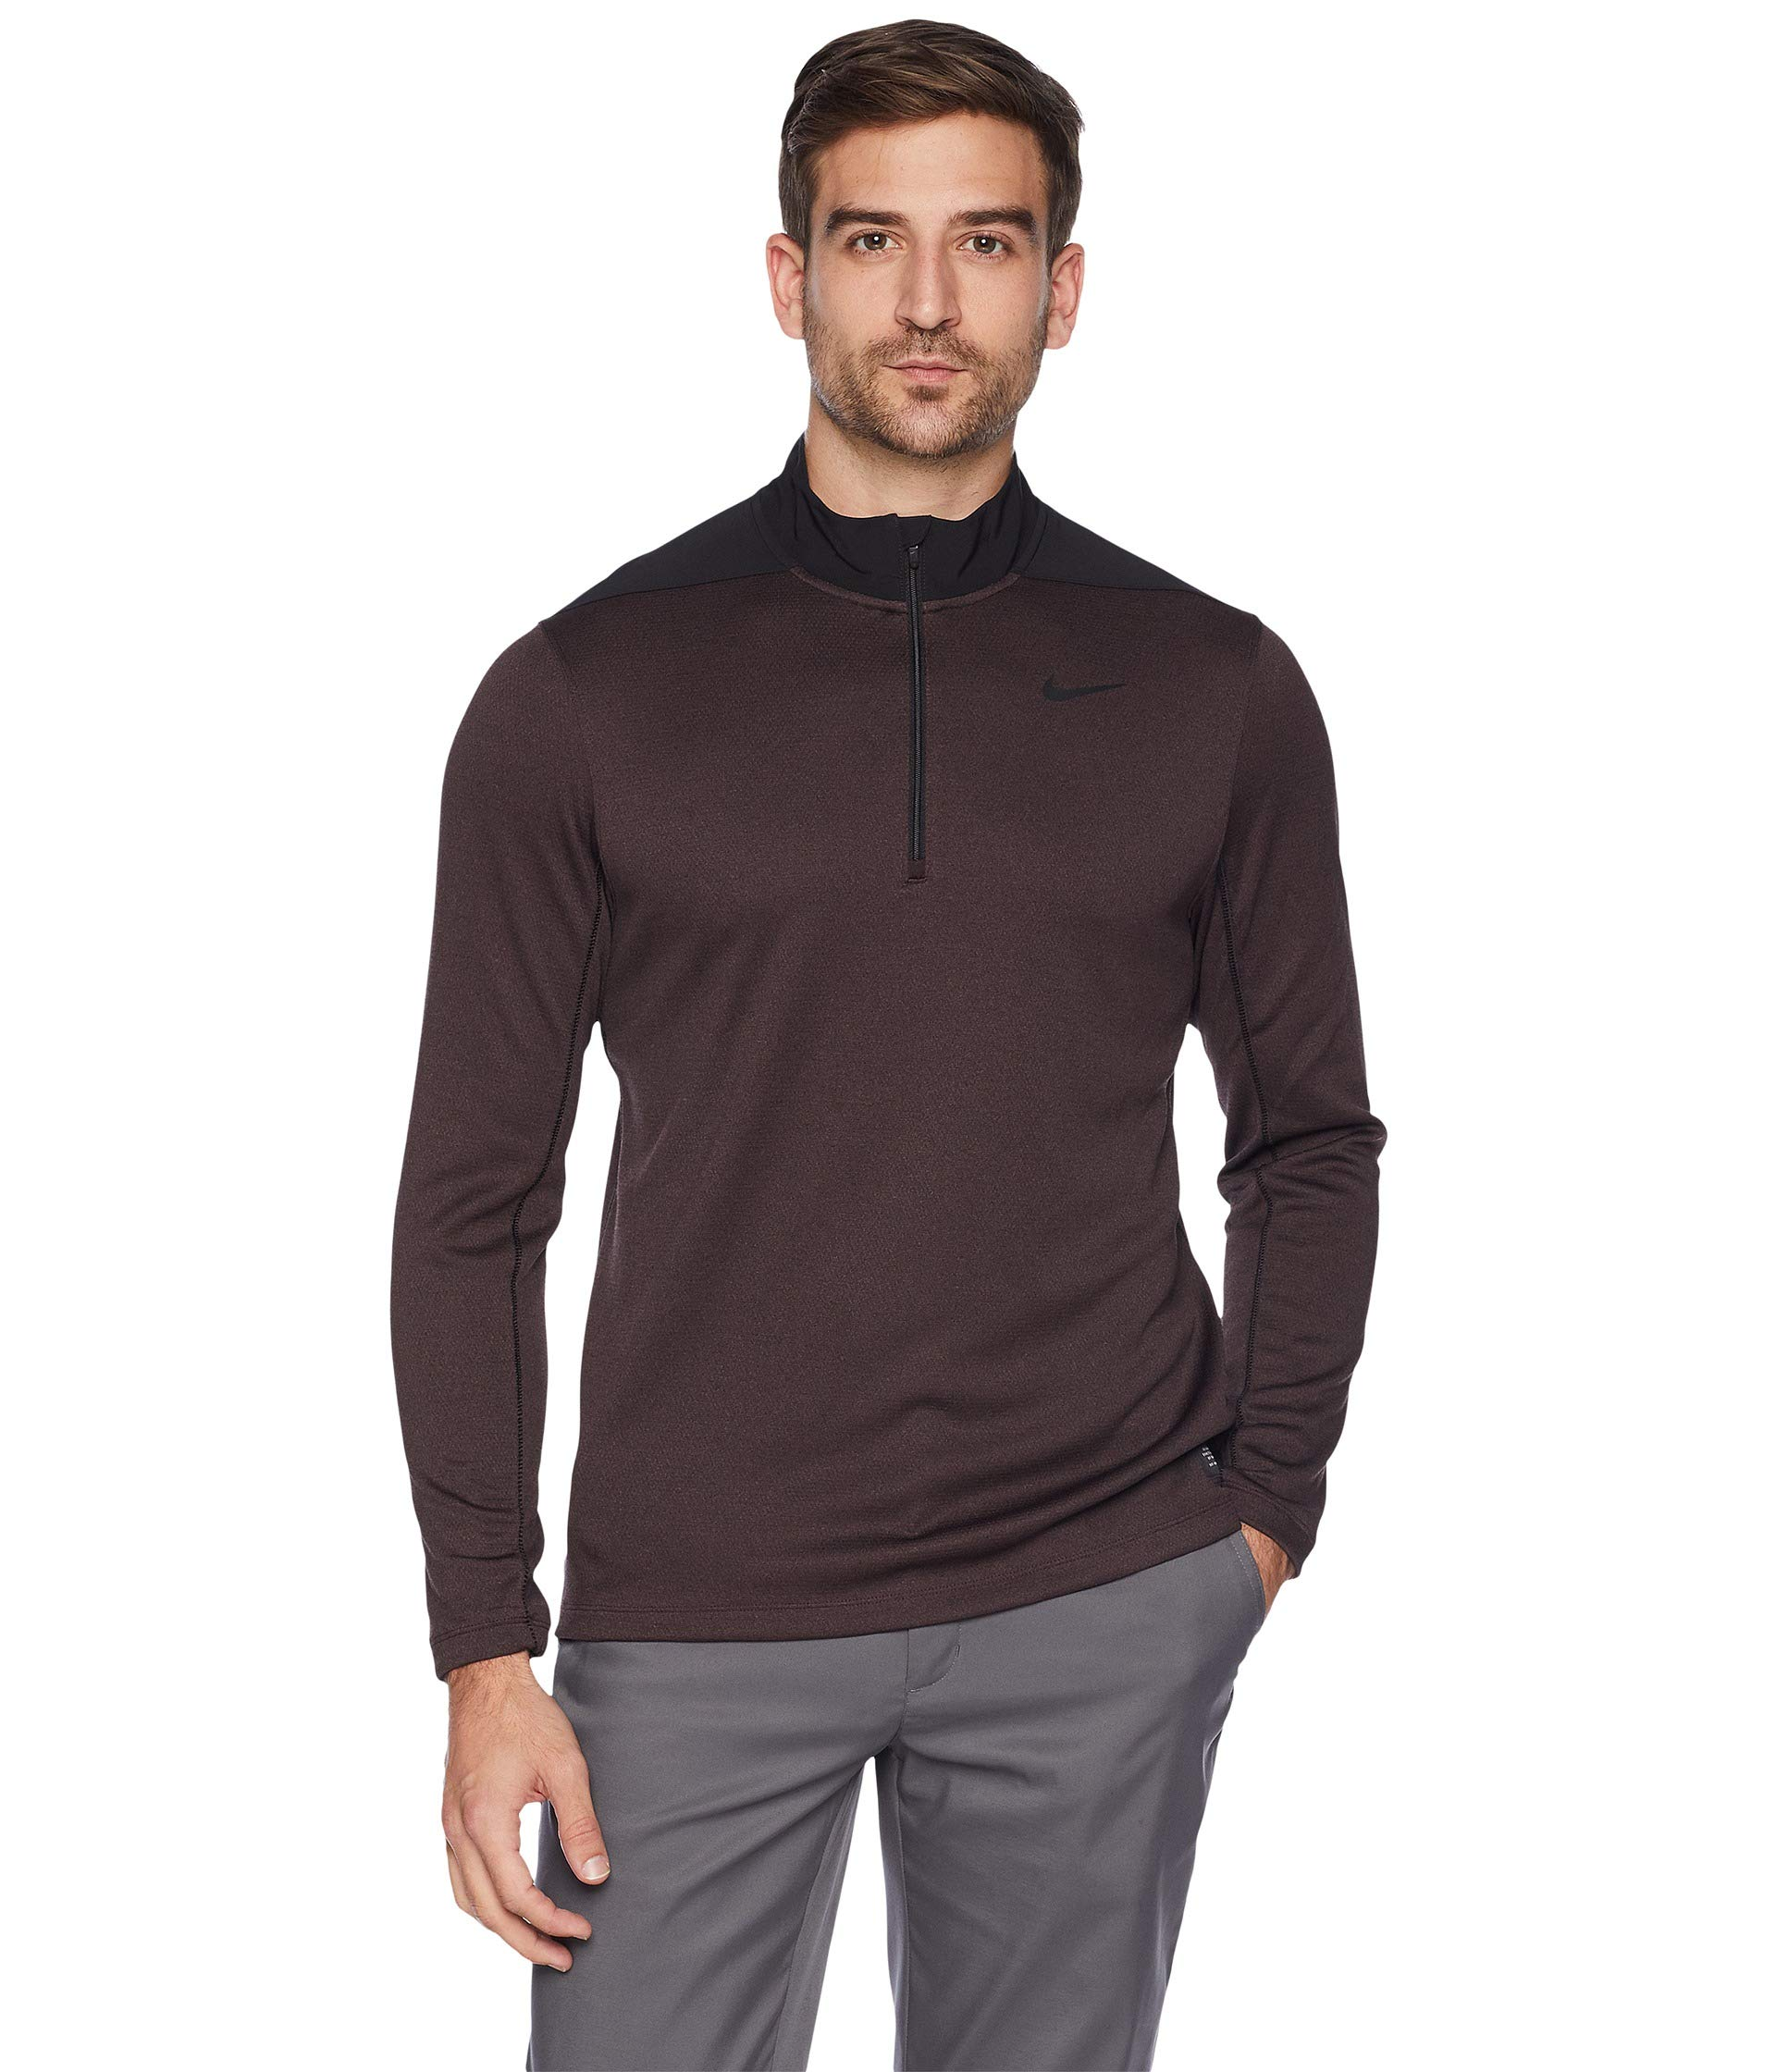 NIKE Dry Top Half Zip Core Golf Pullover 2018 Black/Burgundy Crush Large by Nike